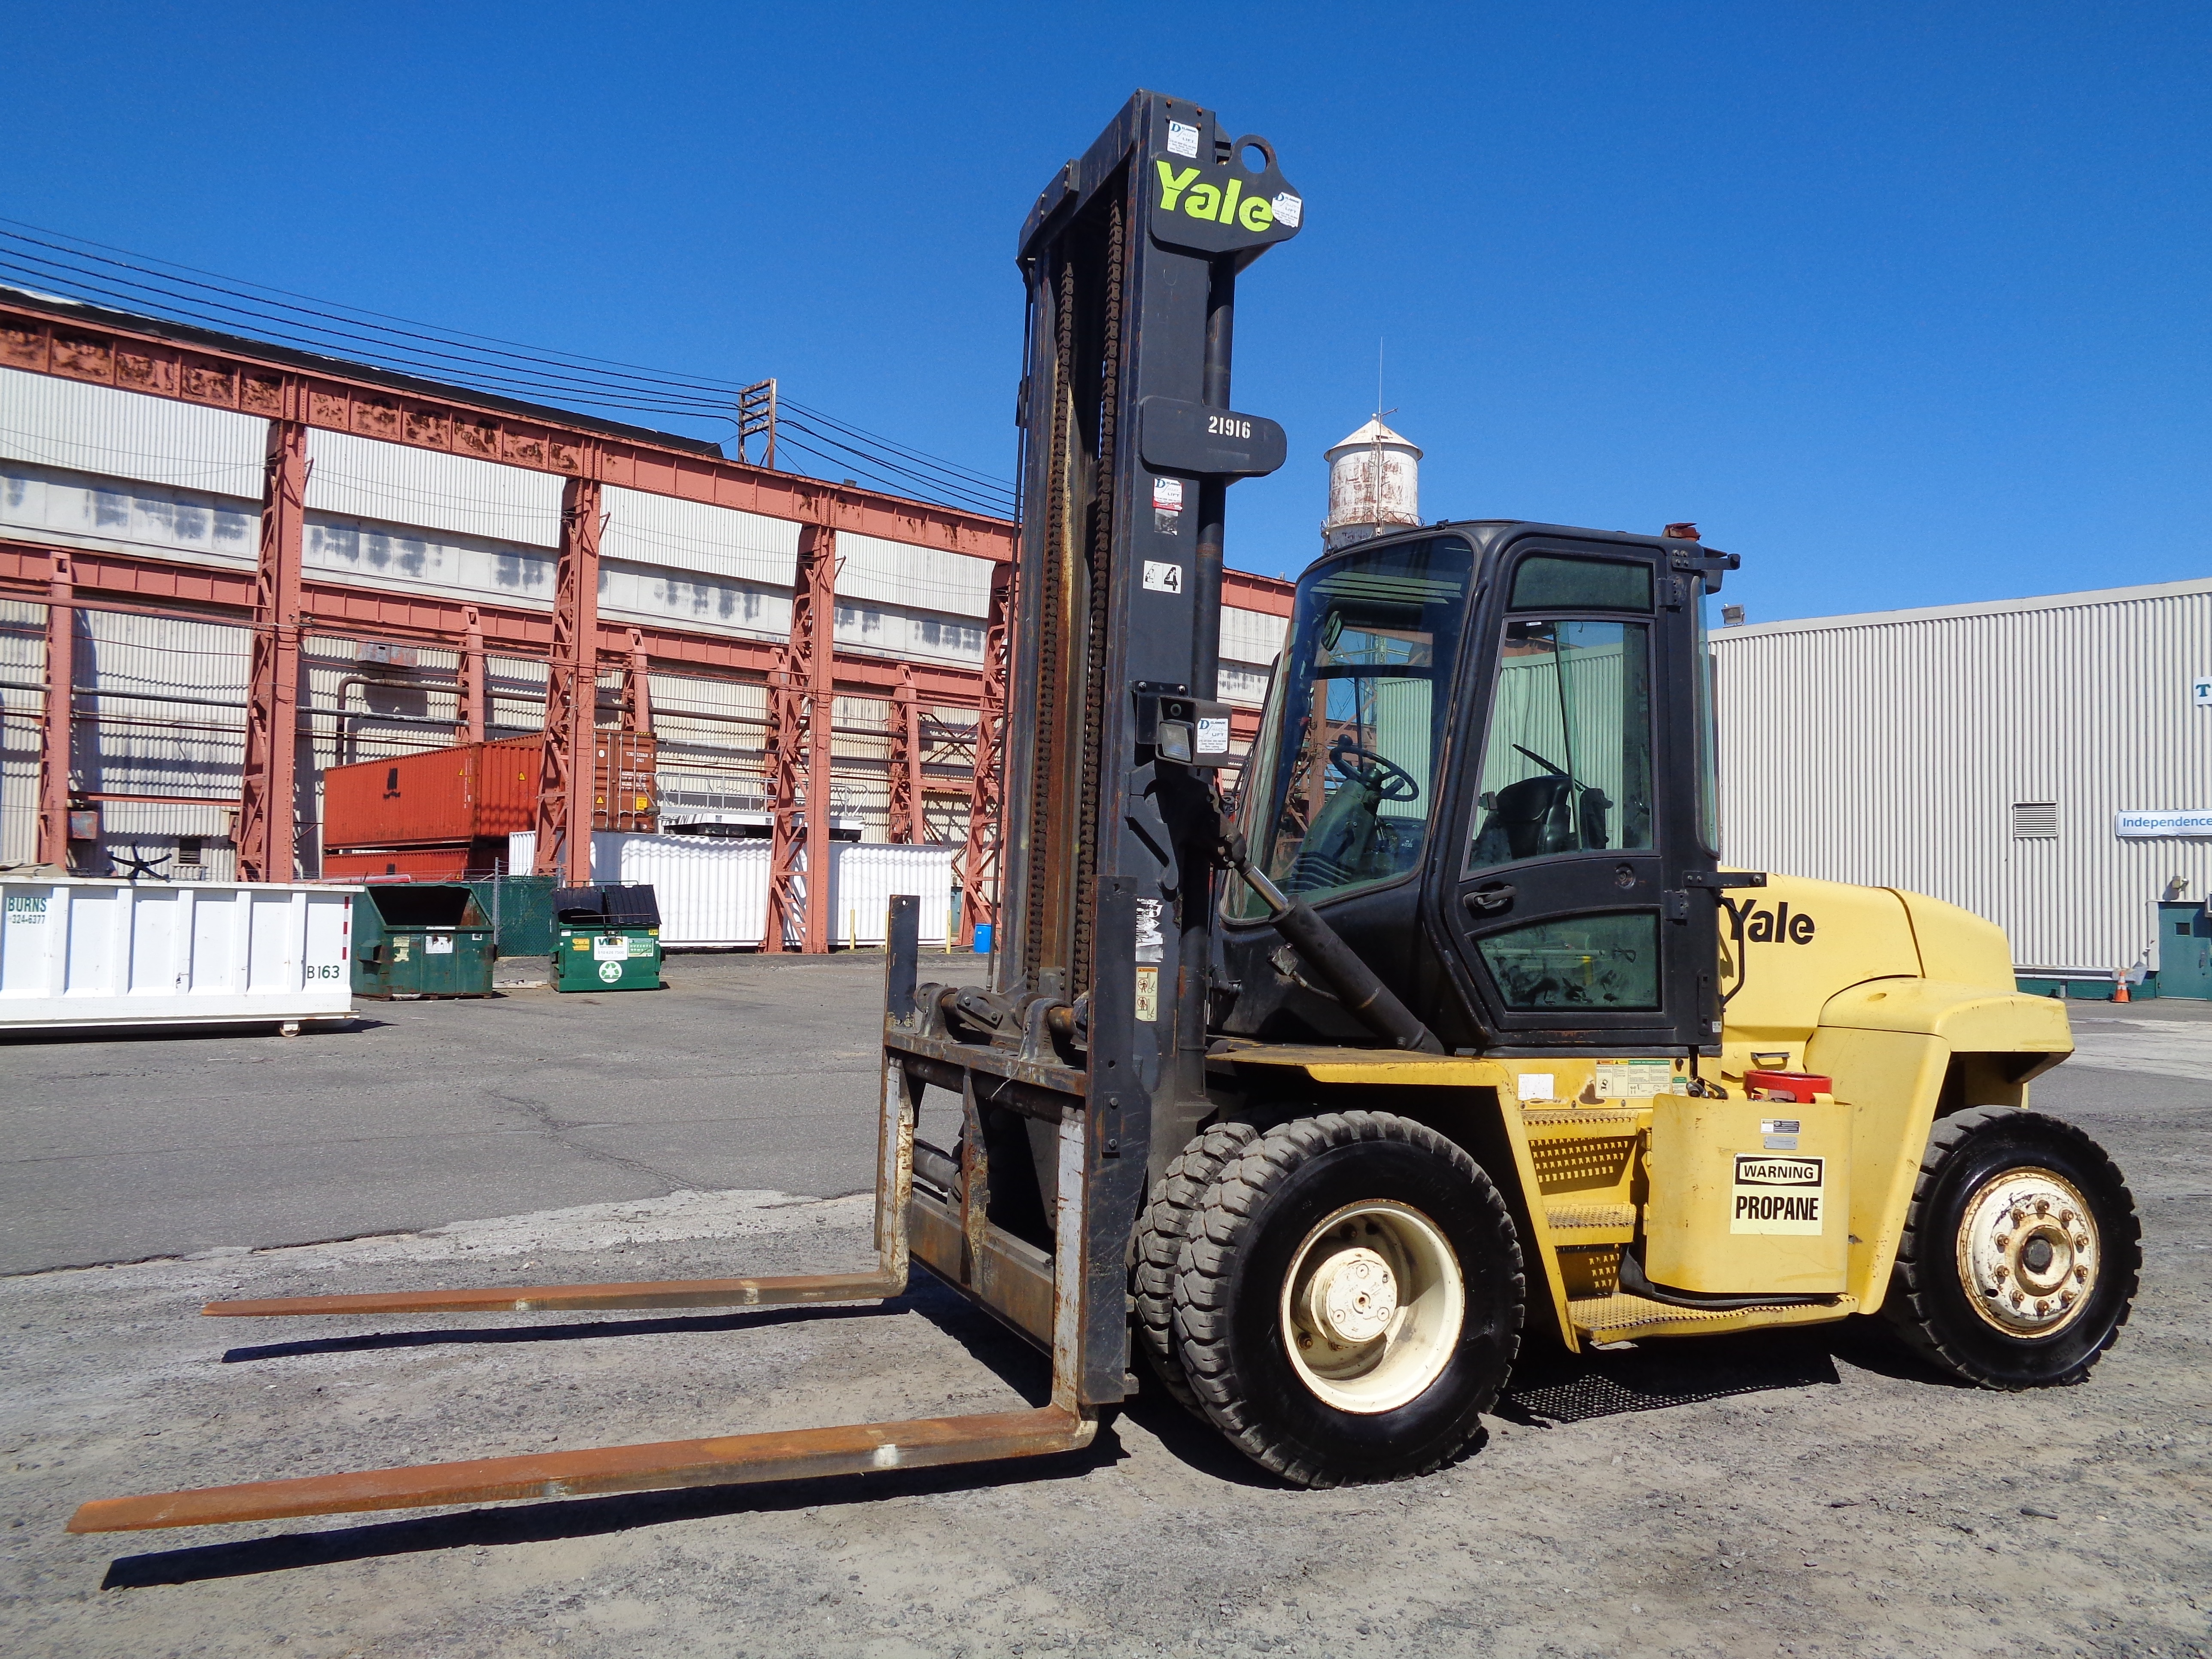 Lot 18 - 2006 Yale GP210DC 21000 lbs Forklift